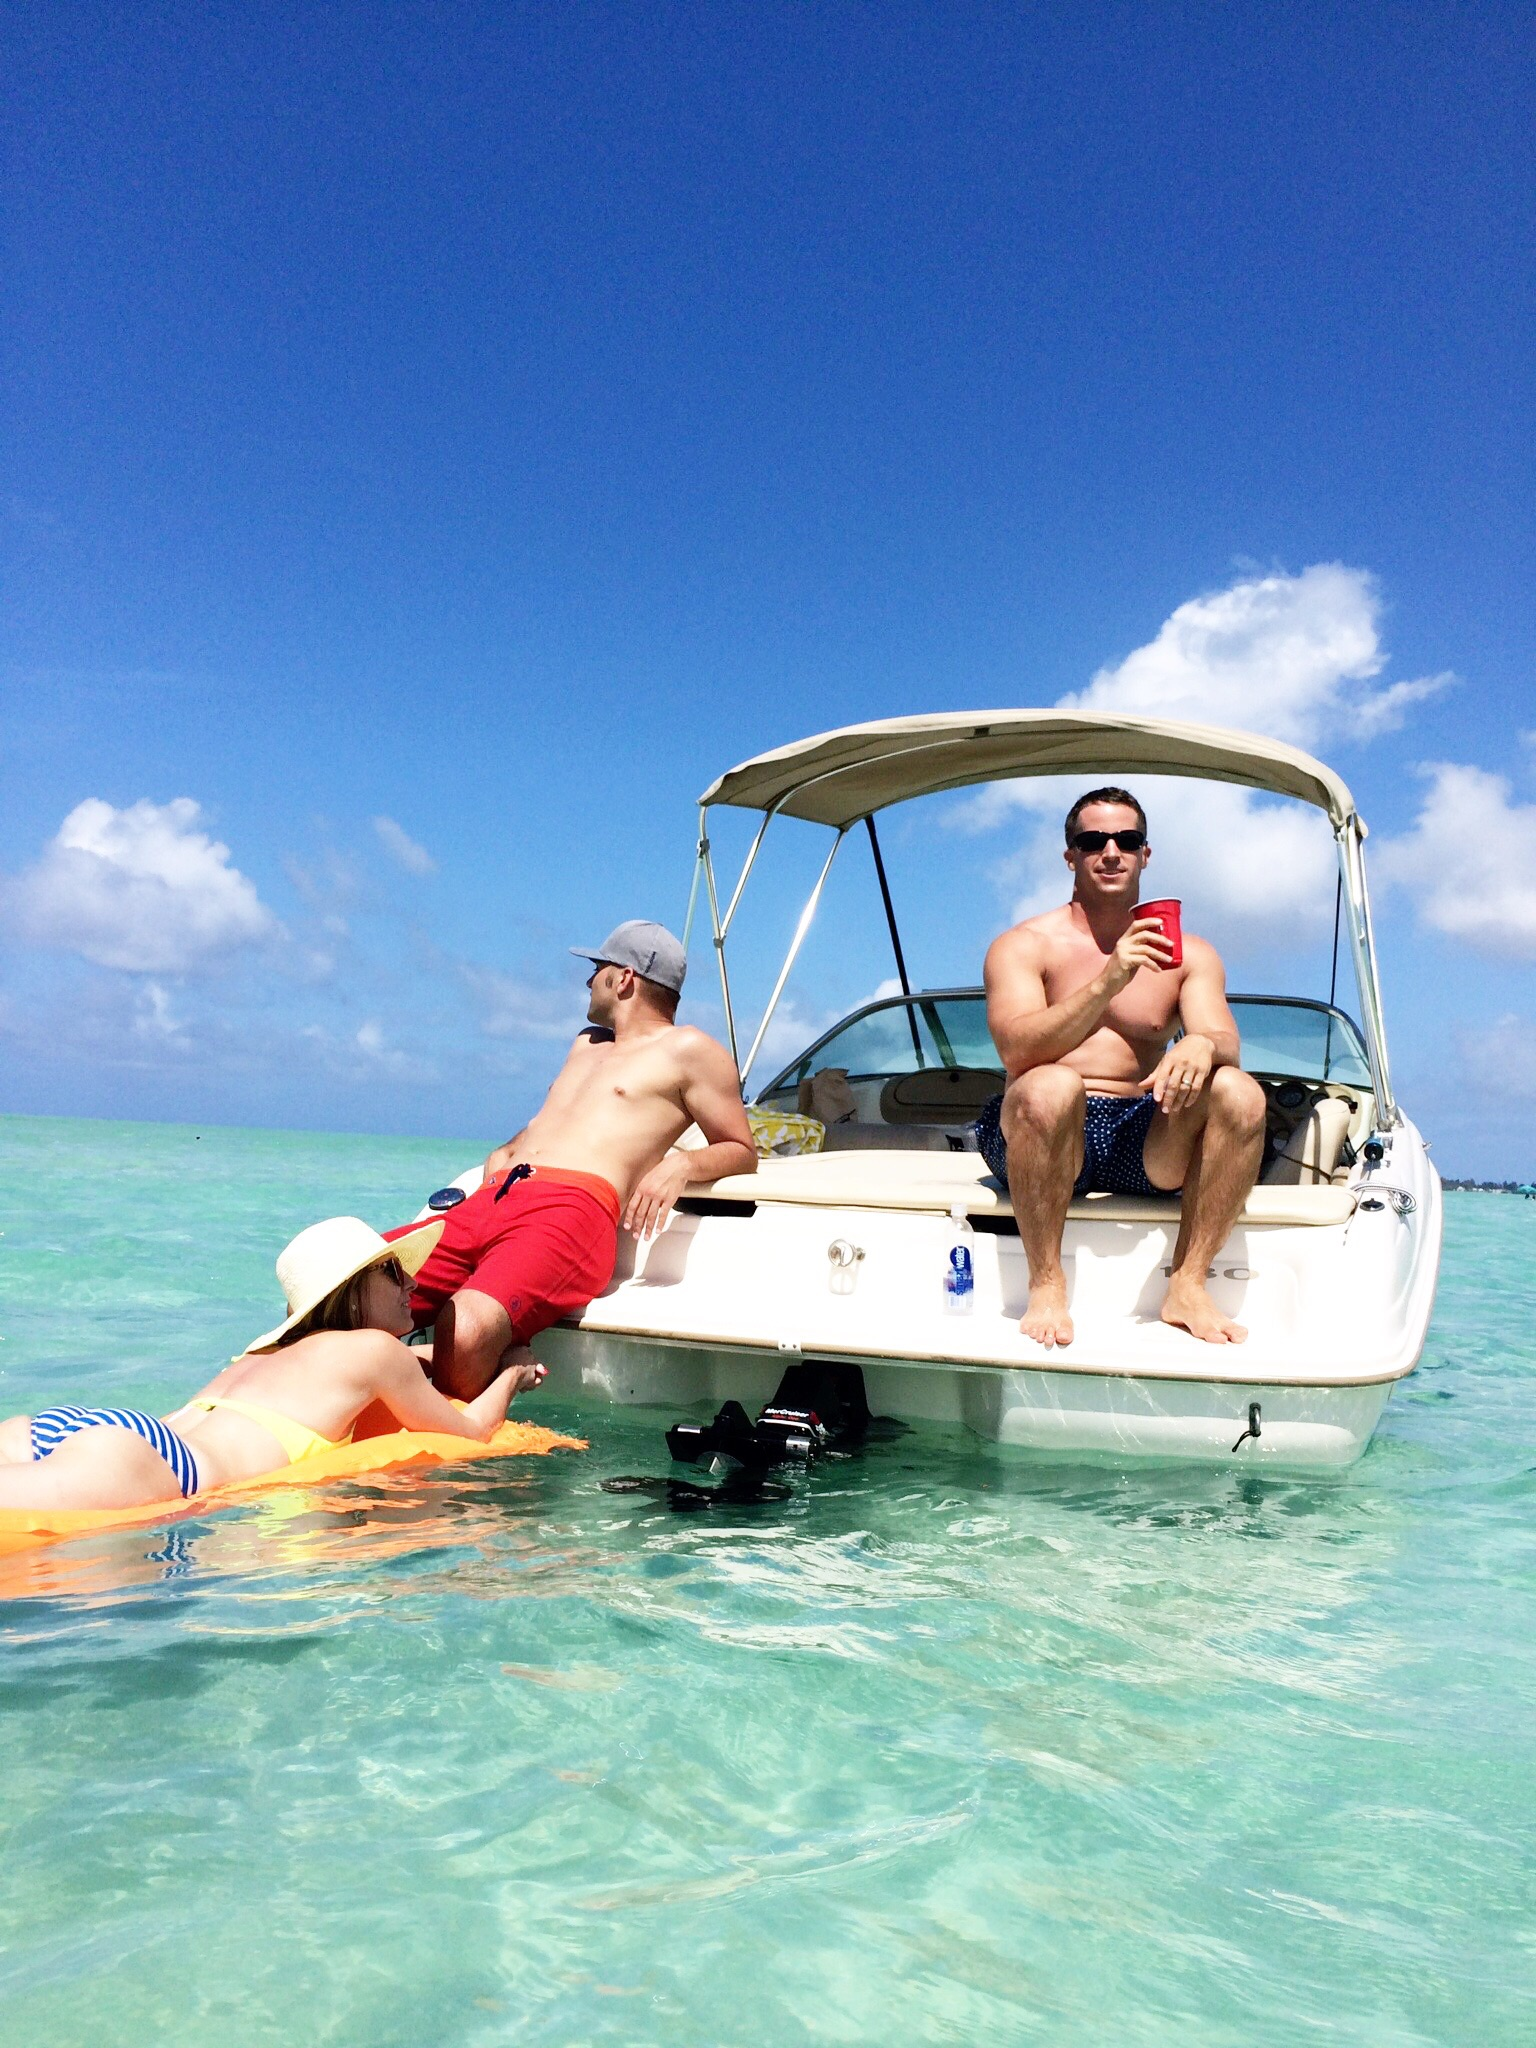 Relaxing on the Kaneohe Sandbar with good friends.